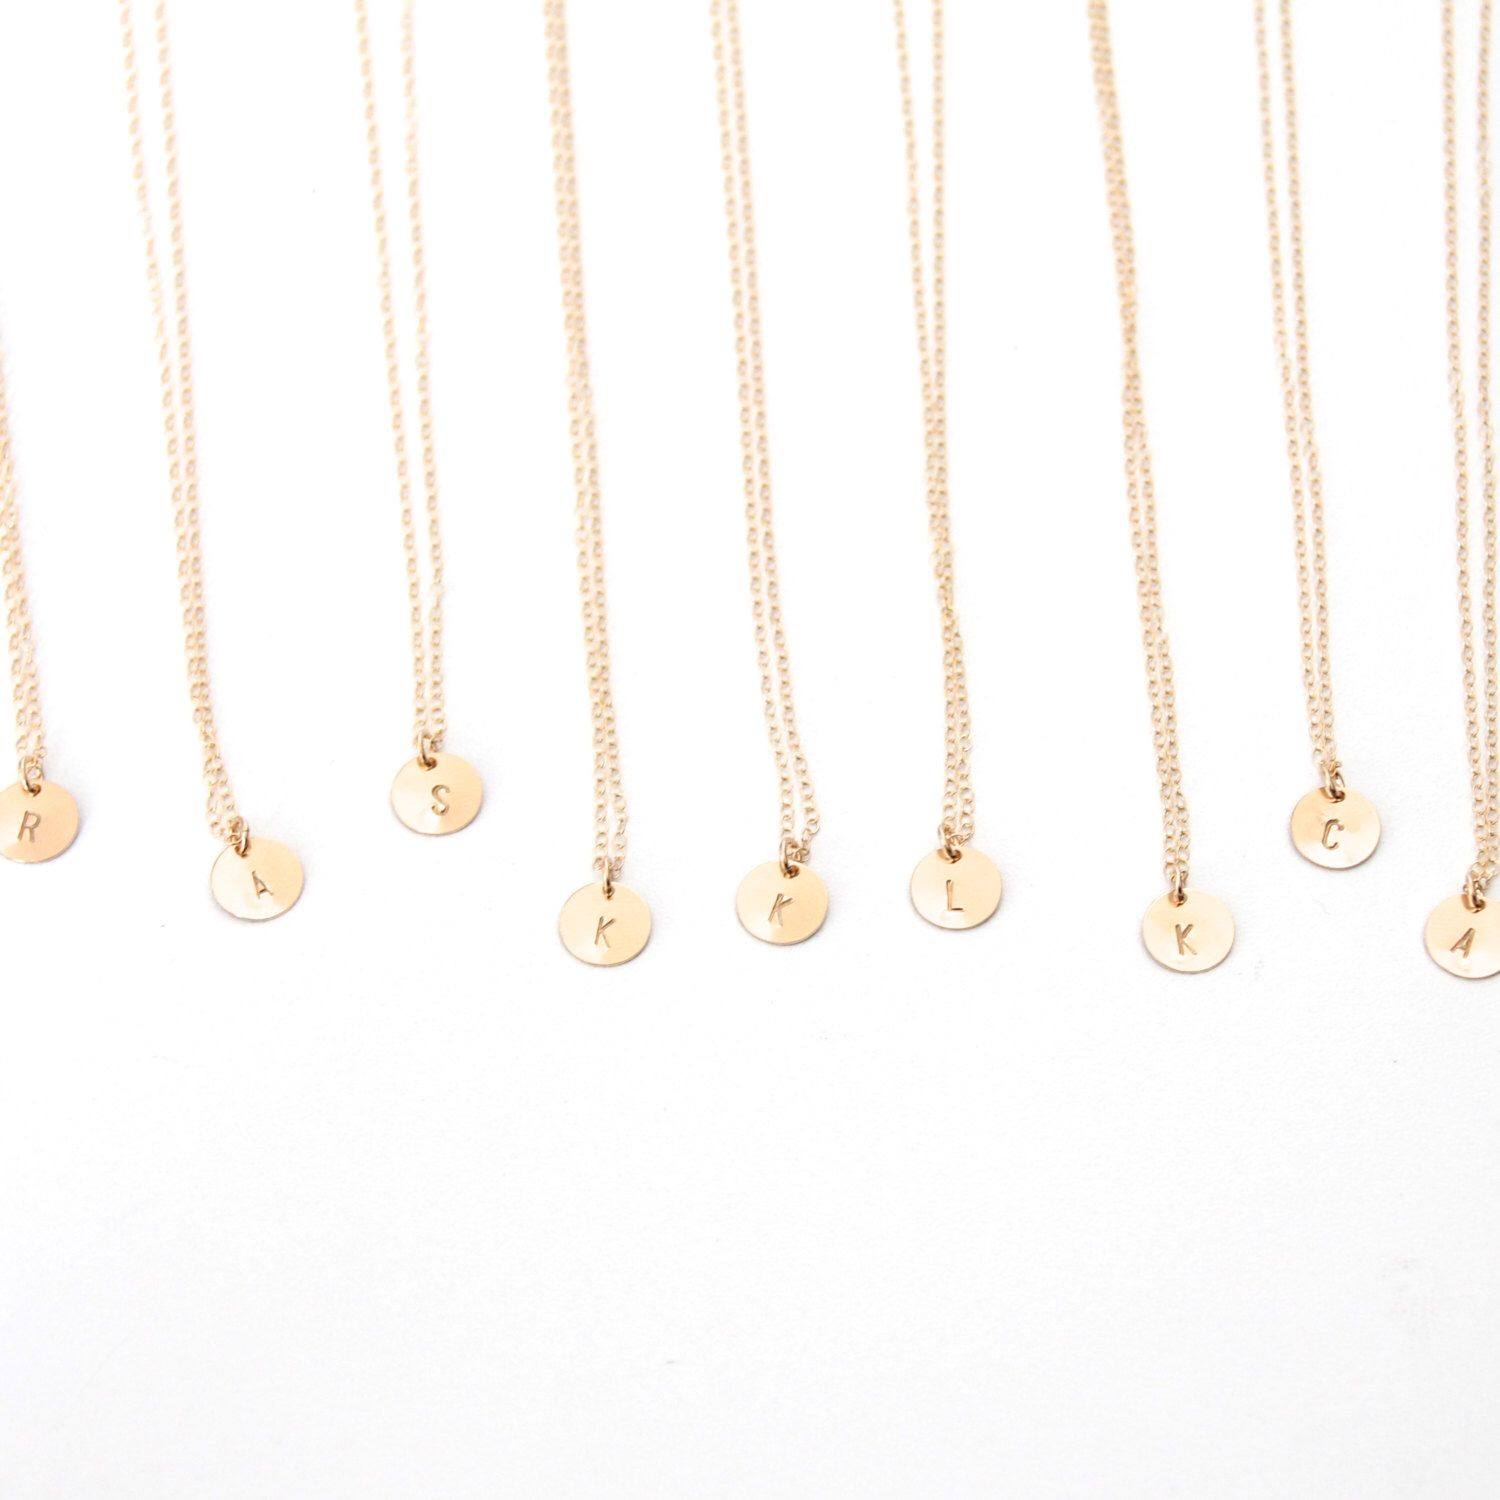 x a initials is and xo of comprised petite initial the pin necklace necklaces chain delicate chains